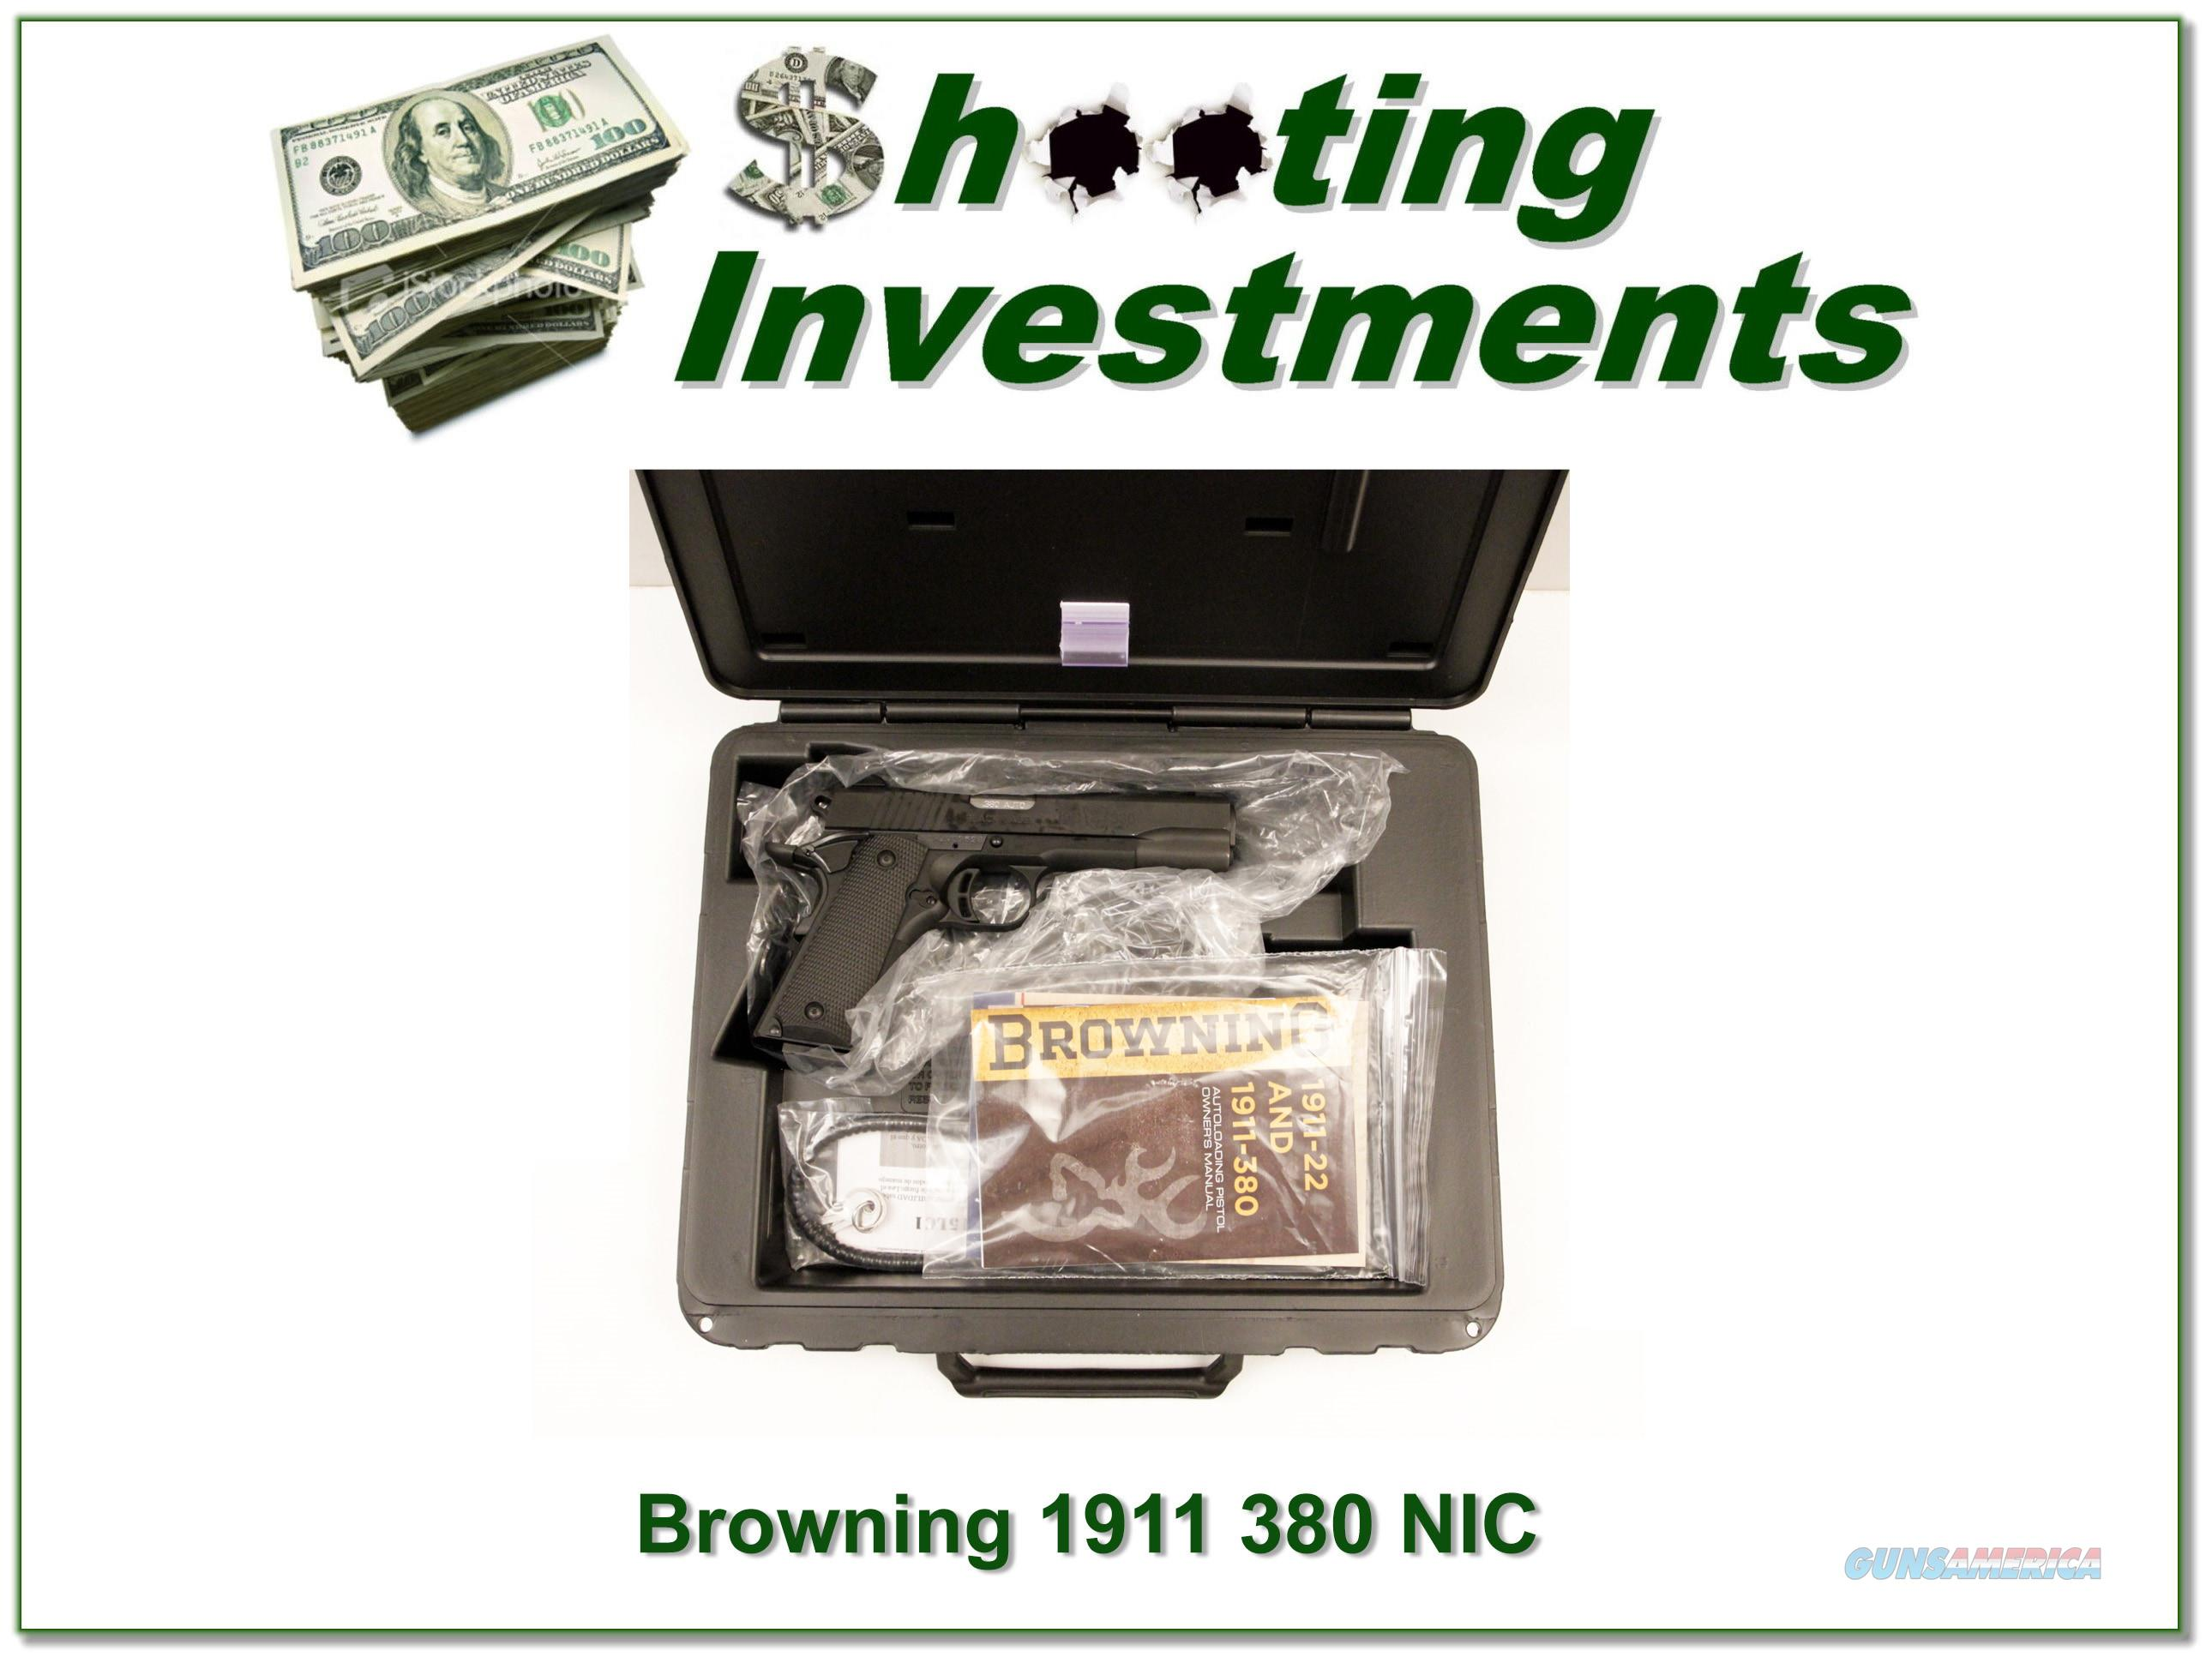 Browning 1911-380 Black Label 380 ACP NIB  Guns > Pistols > Browning Pistols > Other Autos